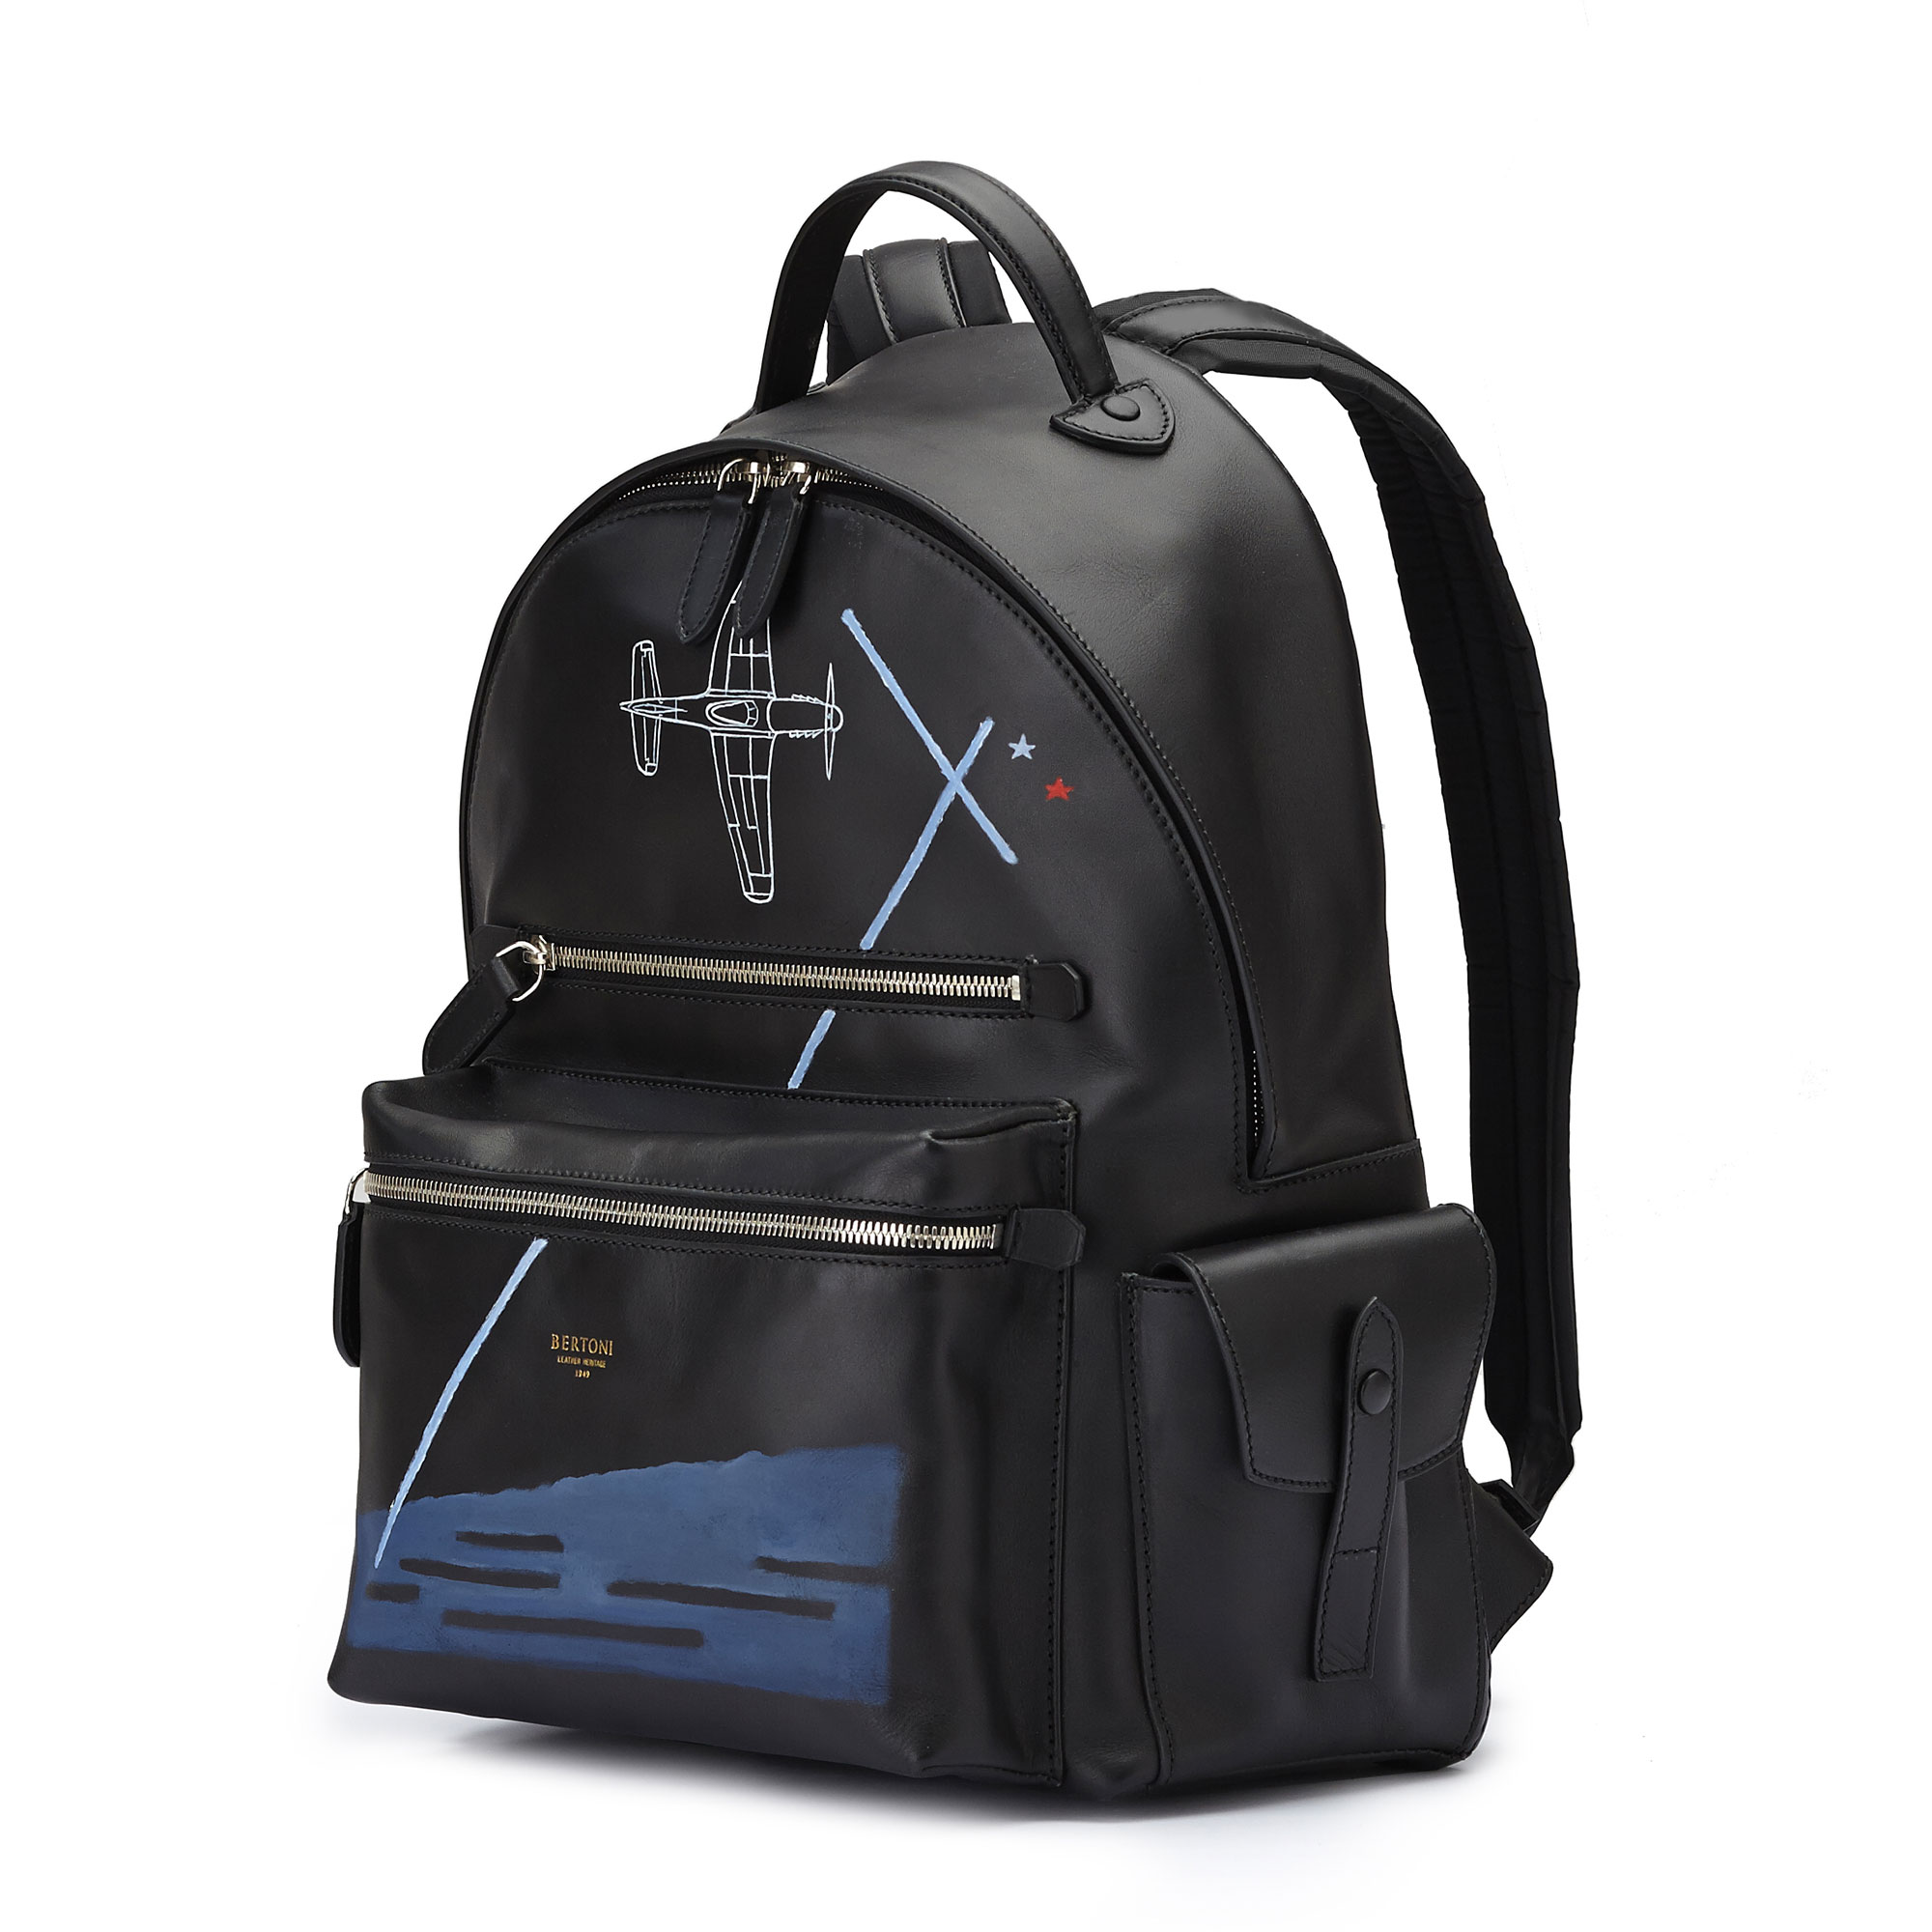 The black french calf Zip Backpack by Bertoni 1949 02